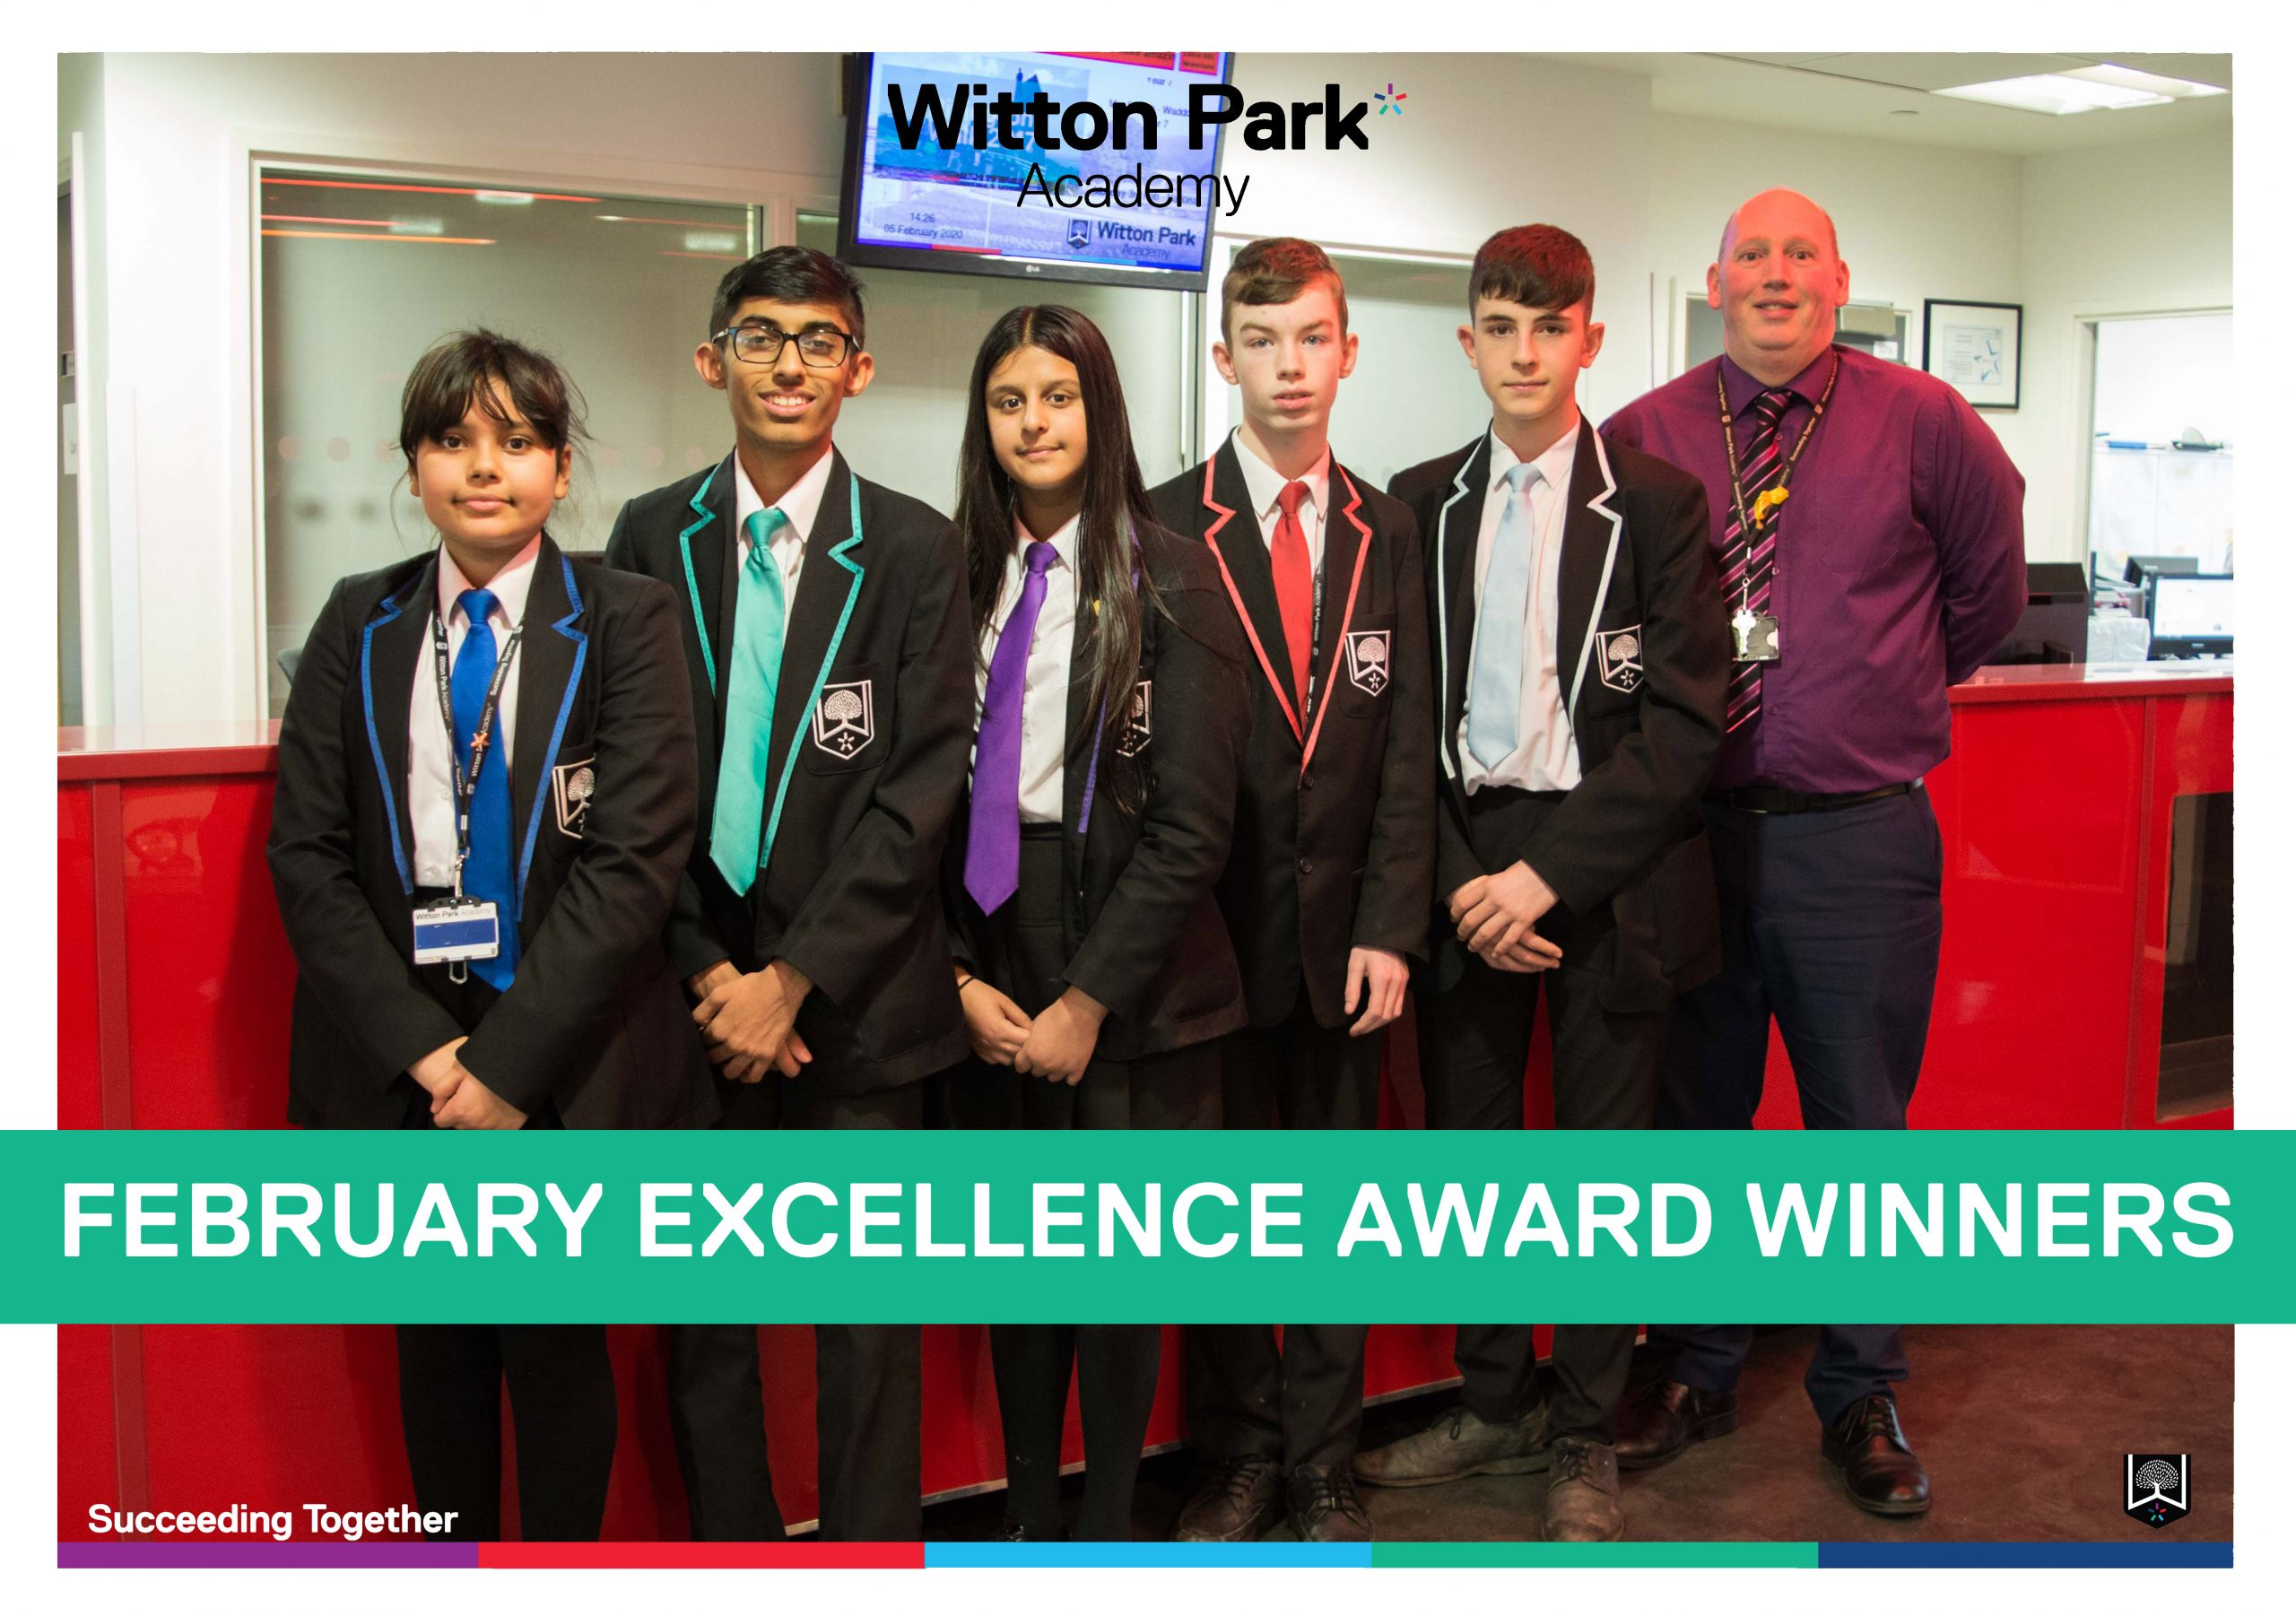 Excellence Awards Winners February 2020